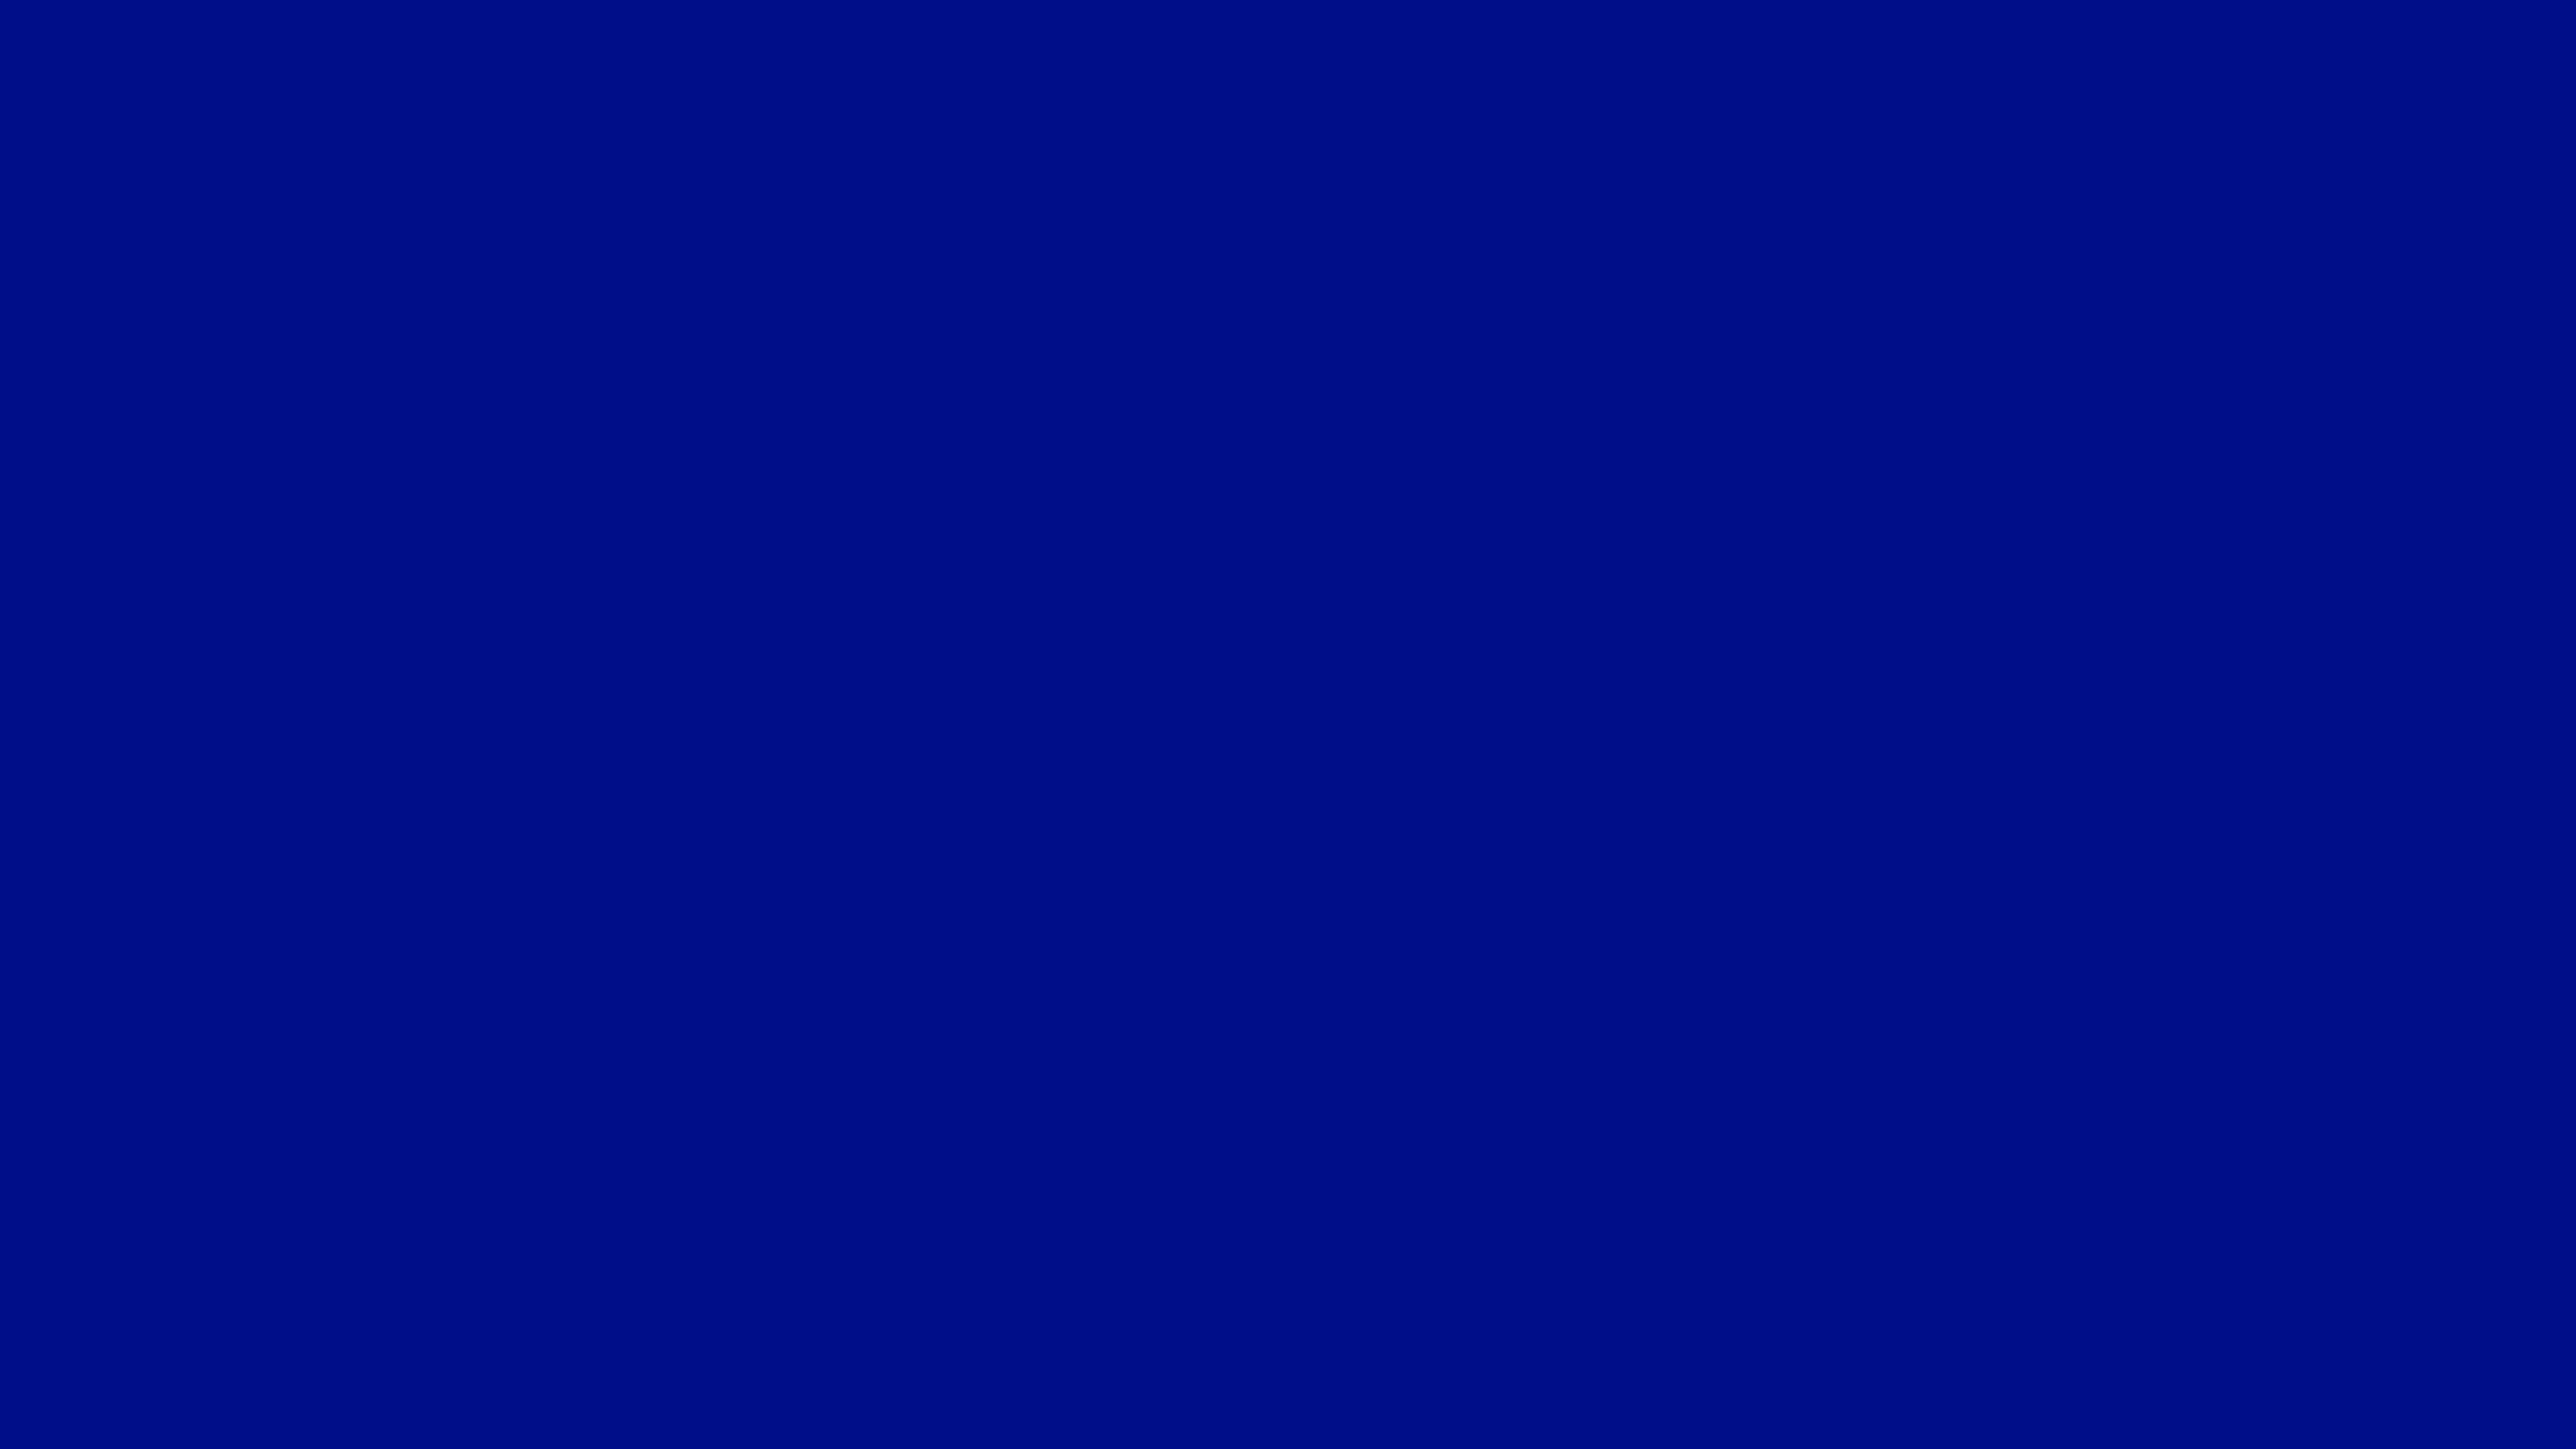 4096x2304 Phthalo Blue Solid Color Background